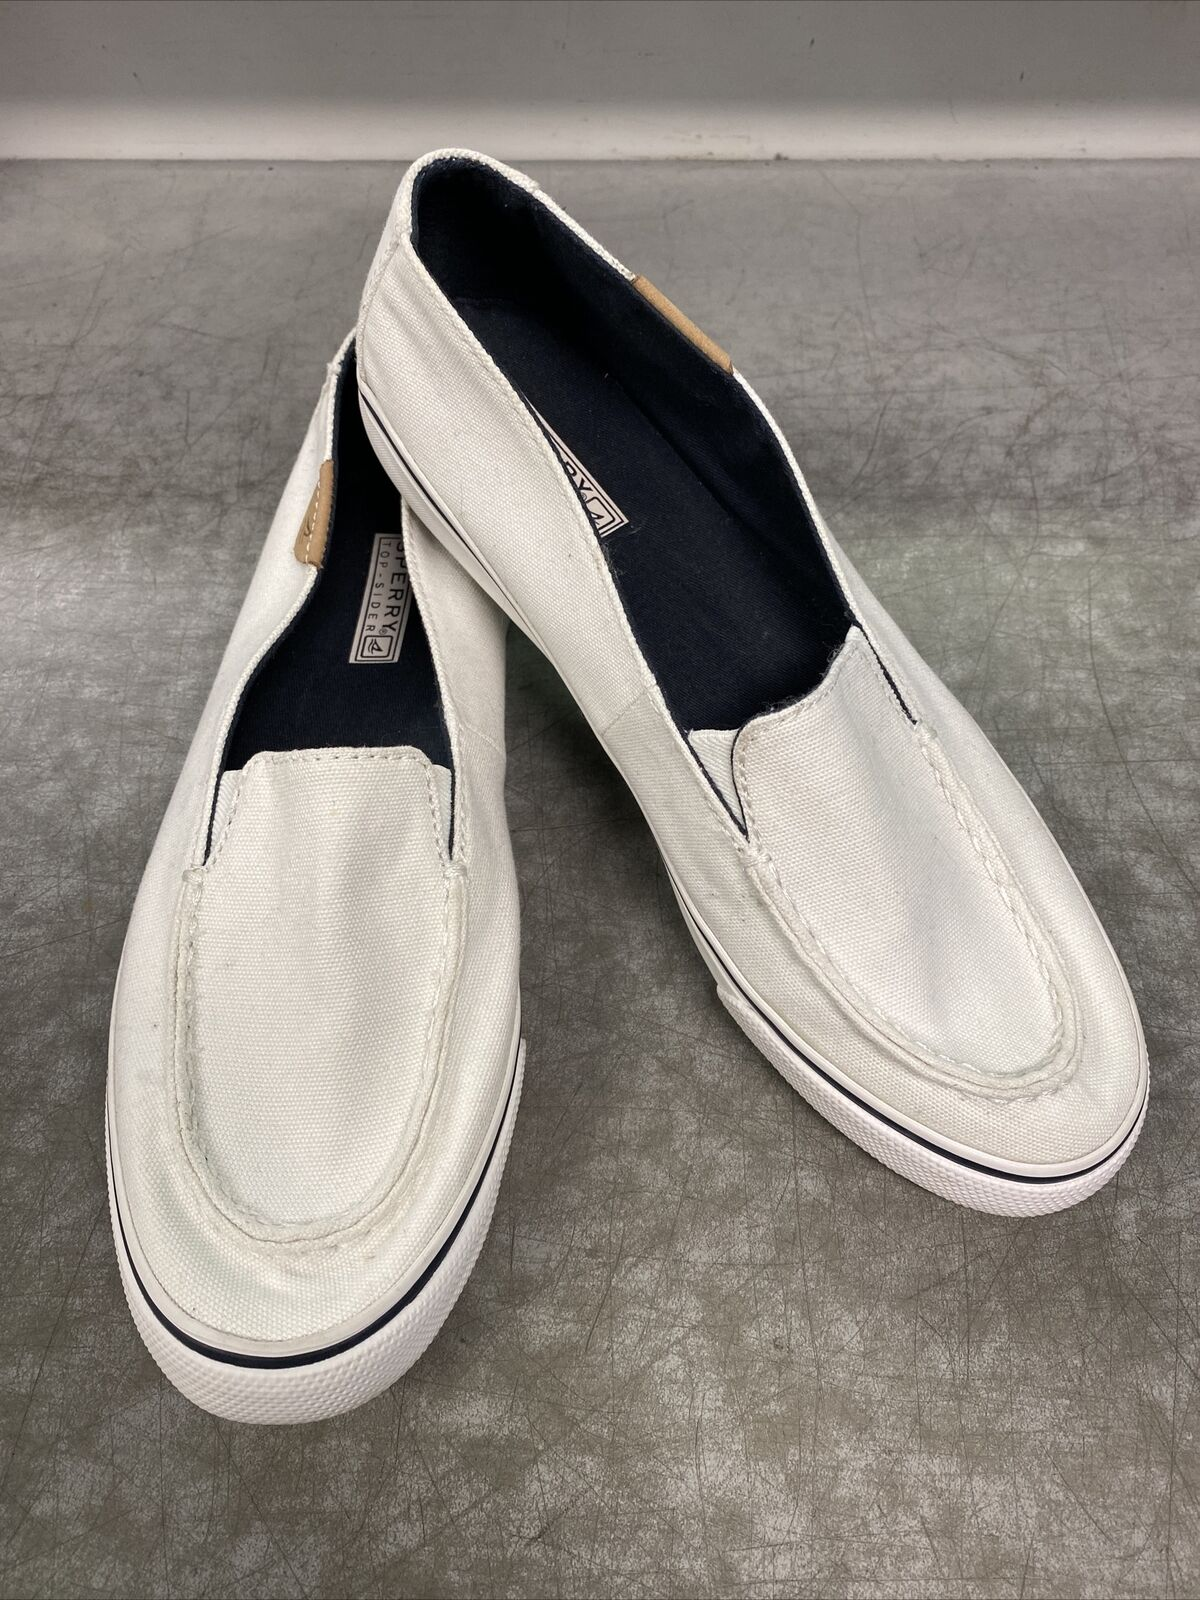 Sperry Top Sider STS93223 Casual Comfort Shoe Women's Size 9.5 White